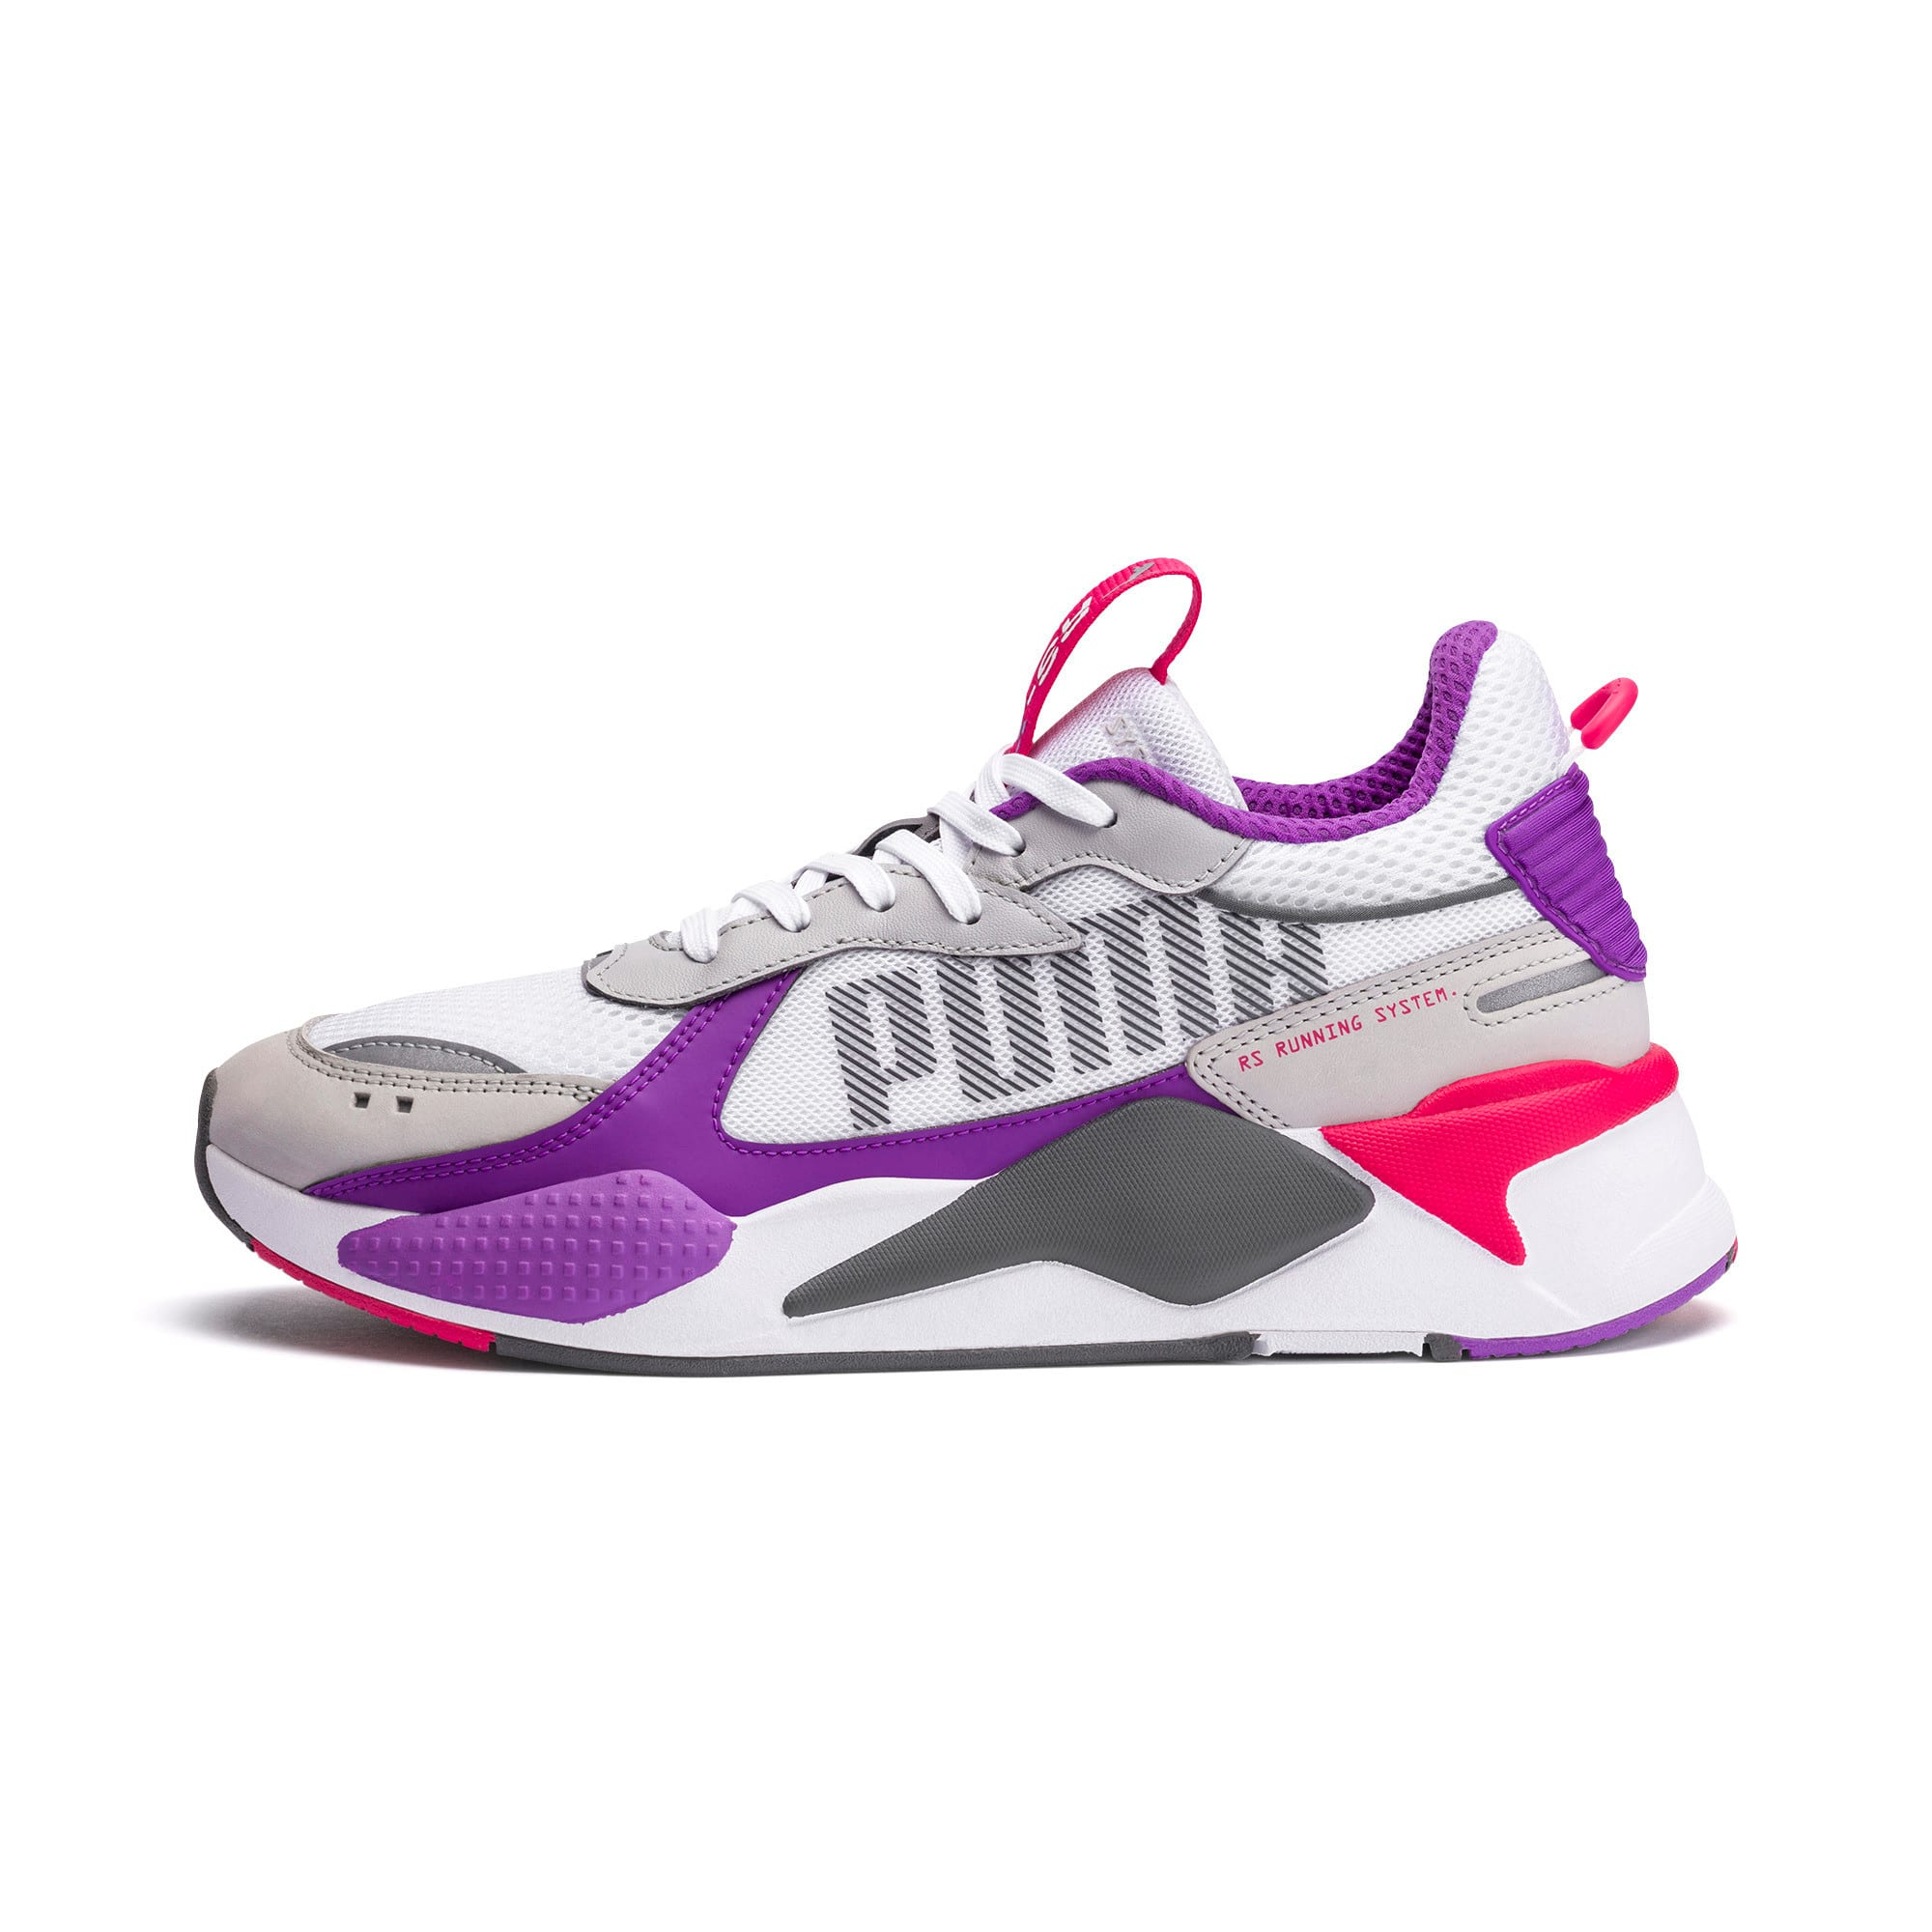 Thumbnail 1 of RS-X Bold Trainers, PWhite-High Rise-Royal Lilac, medium